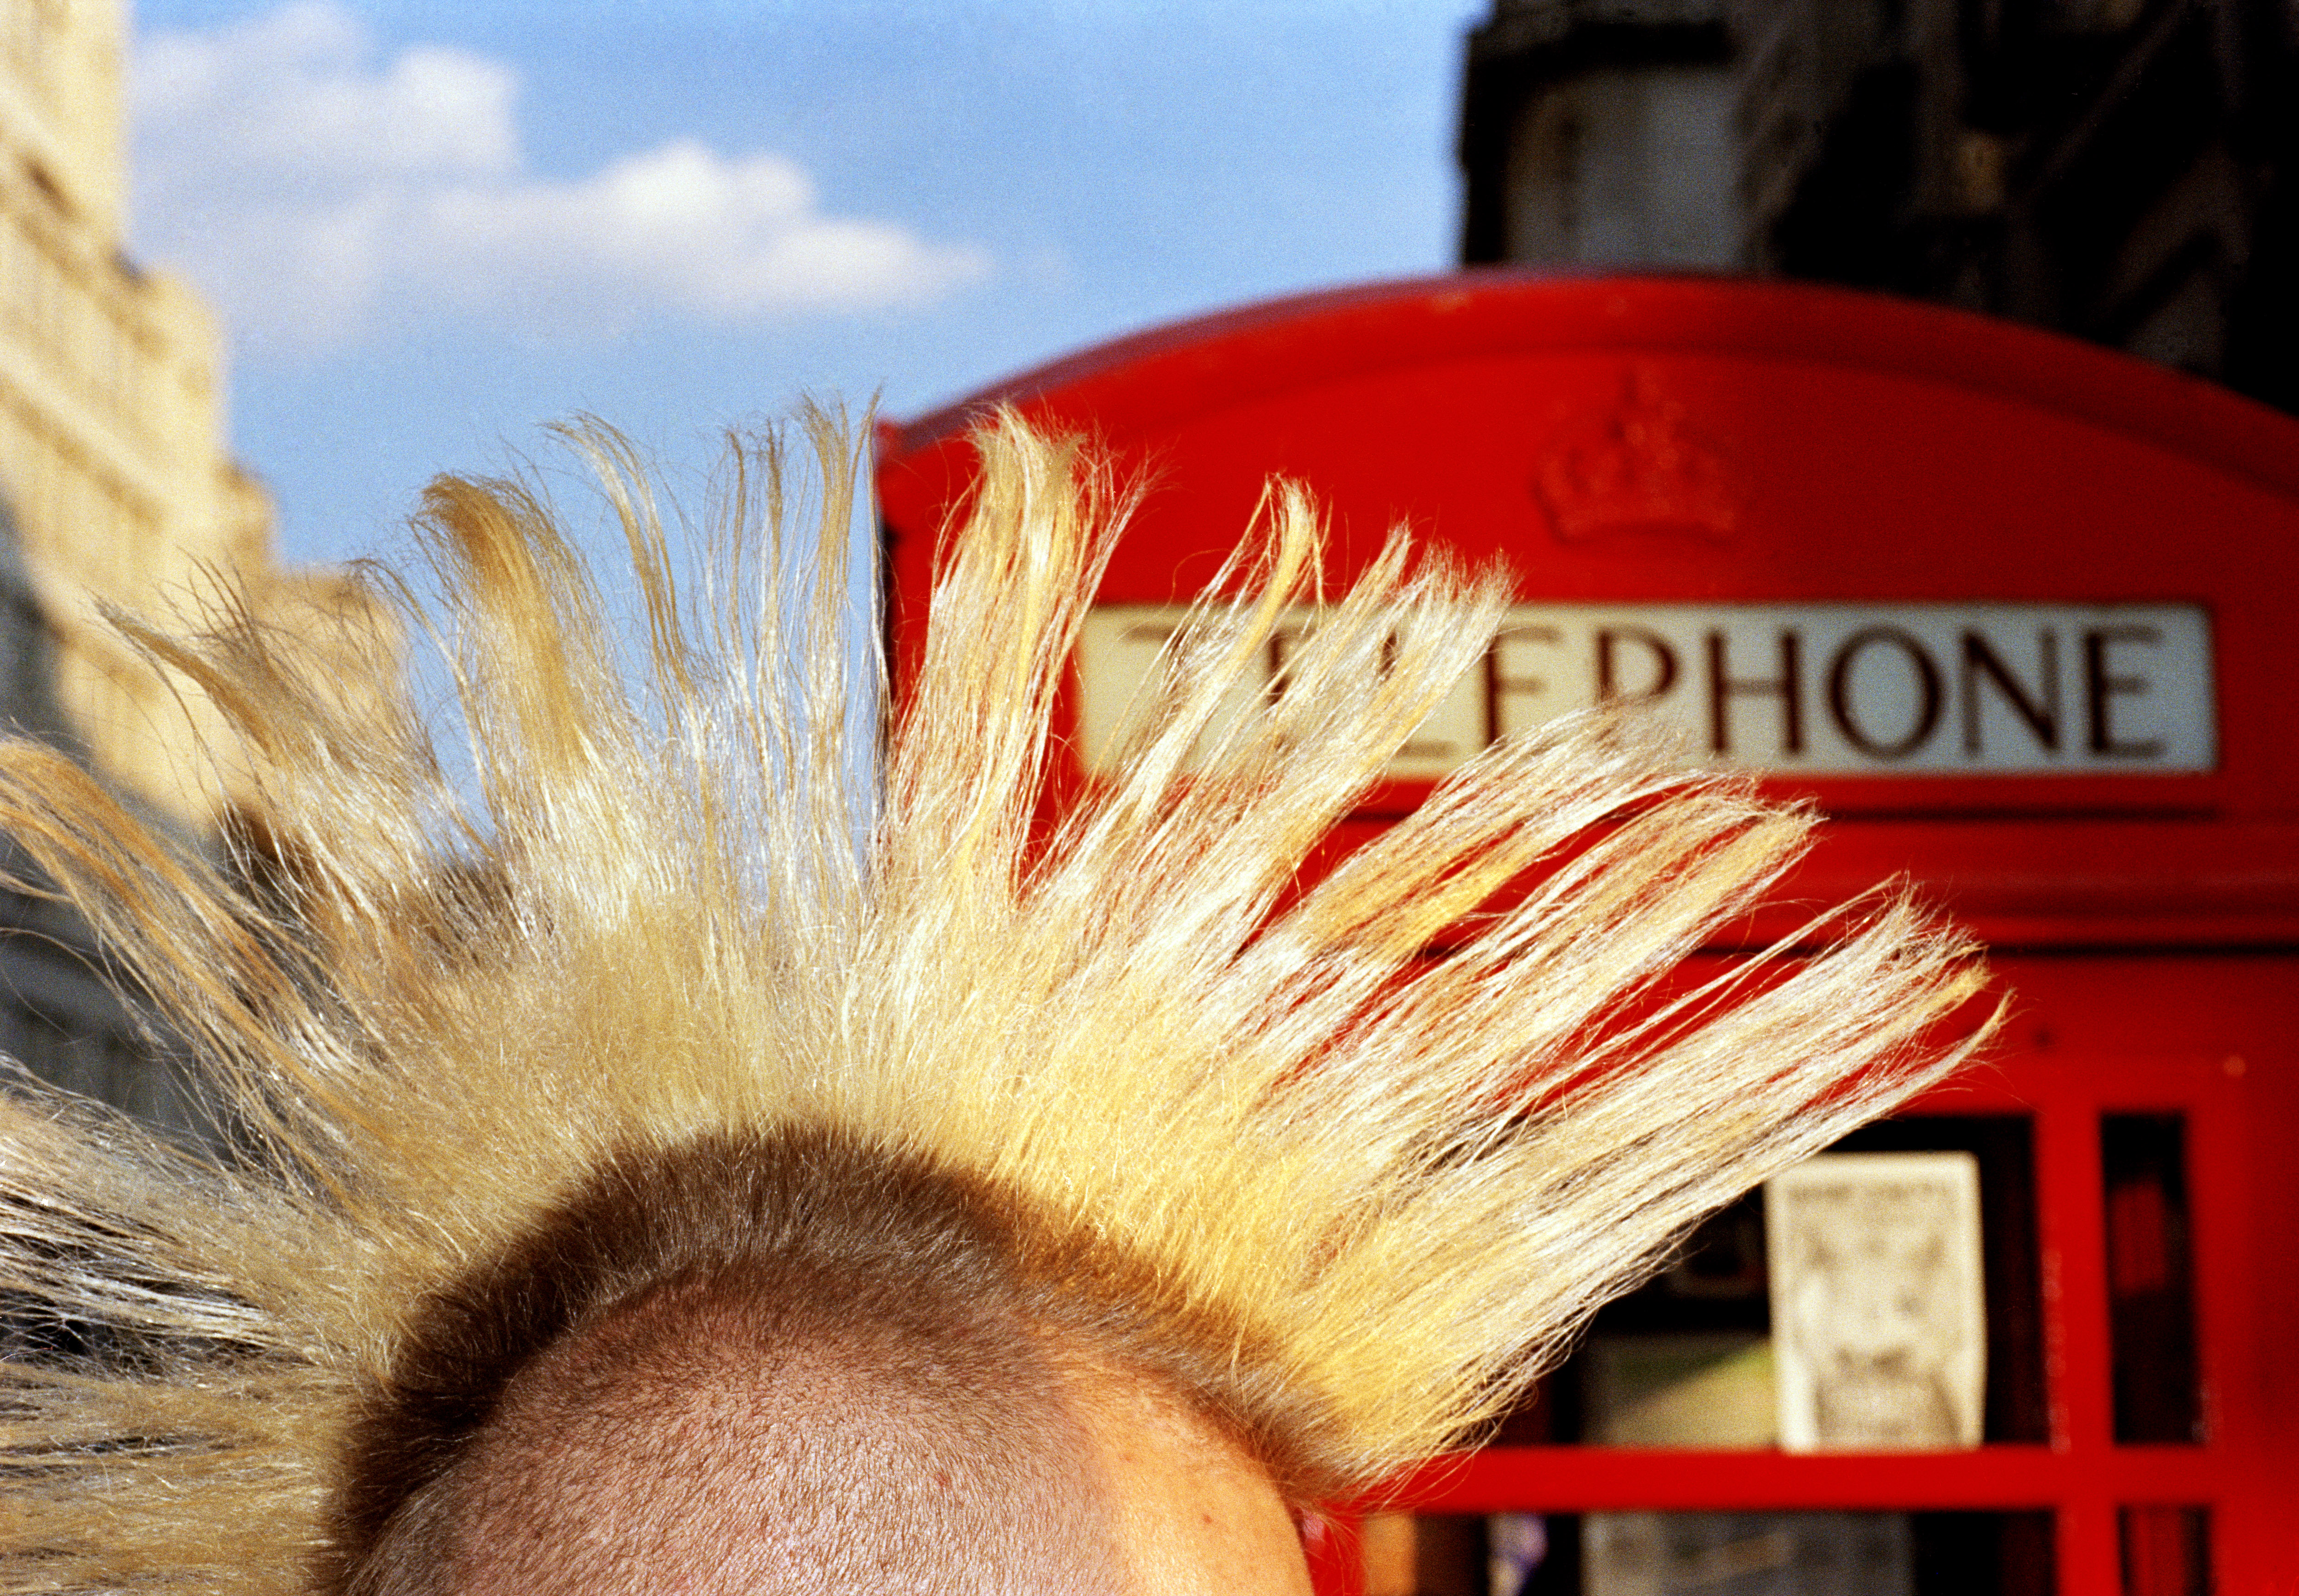 1997. Some punks kept their Mohican haircuts and lived by charging tourists money to photograph them (often by a red bus or telephone box).